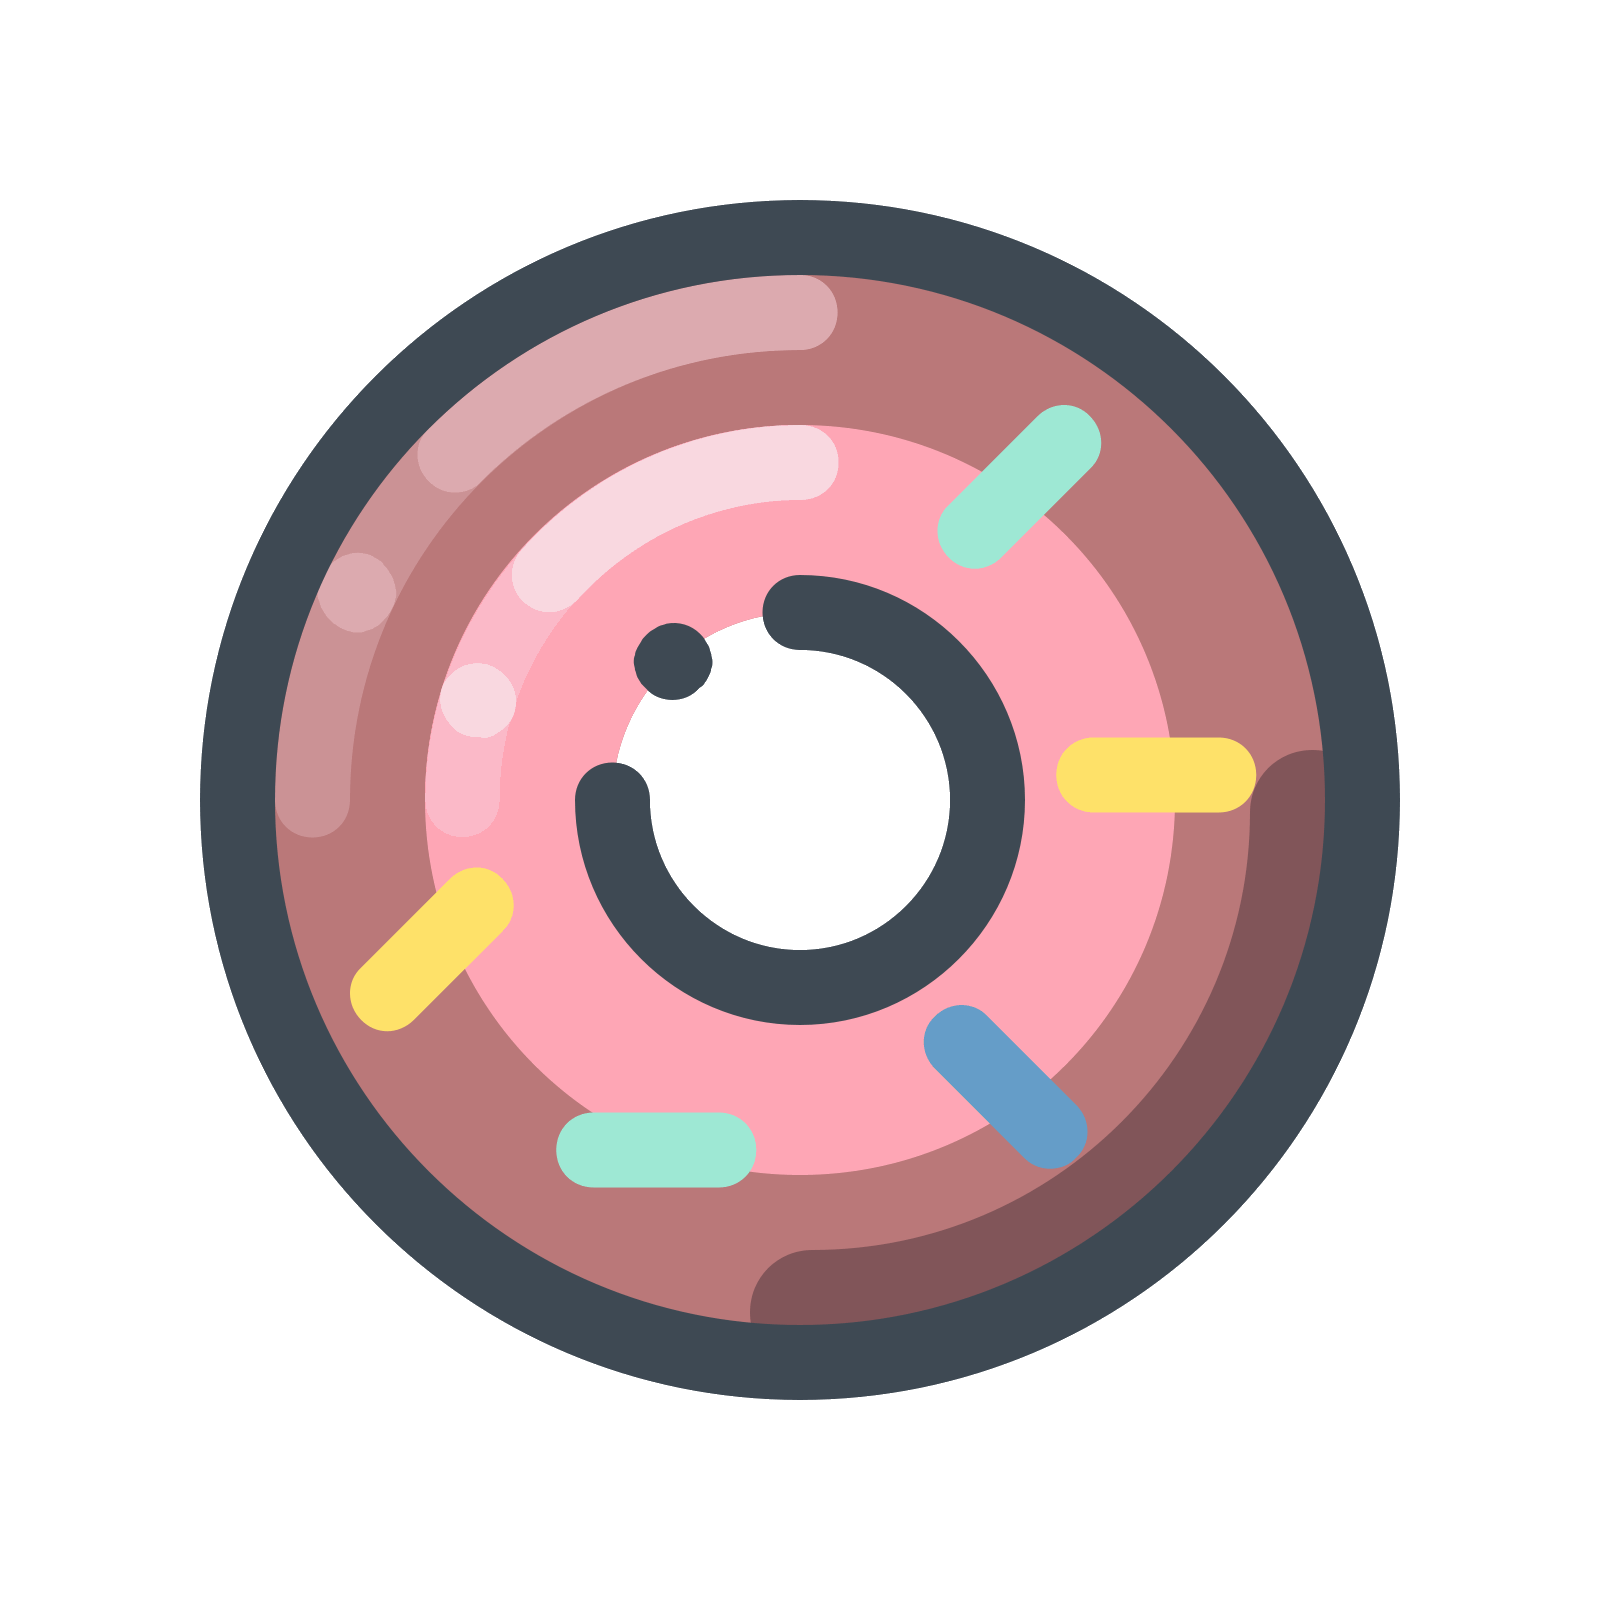 Doughnut clipart vector. Cherry donut icon free